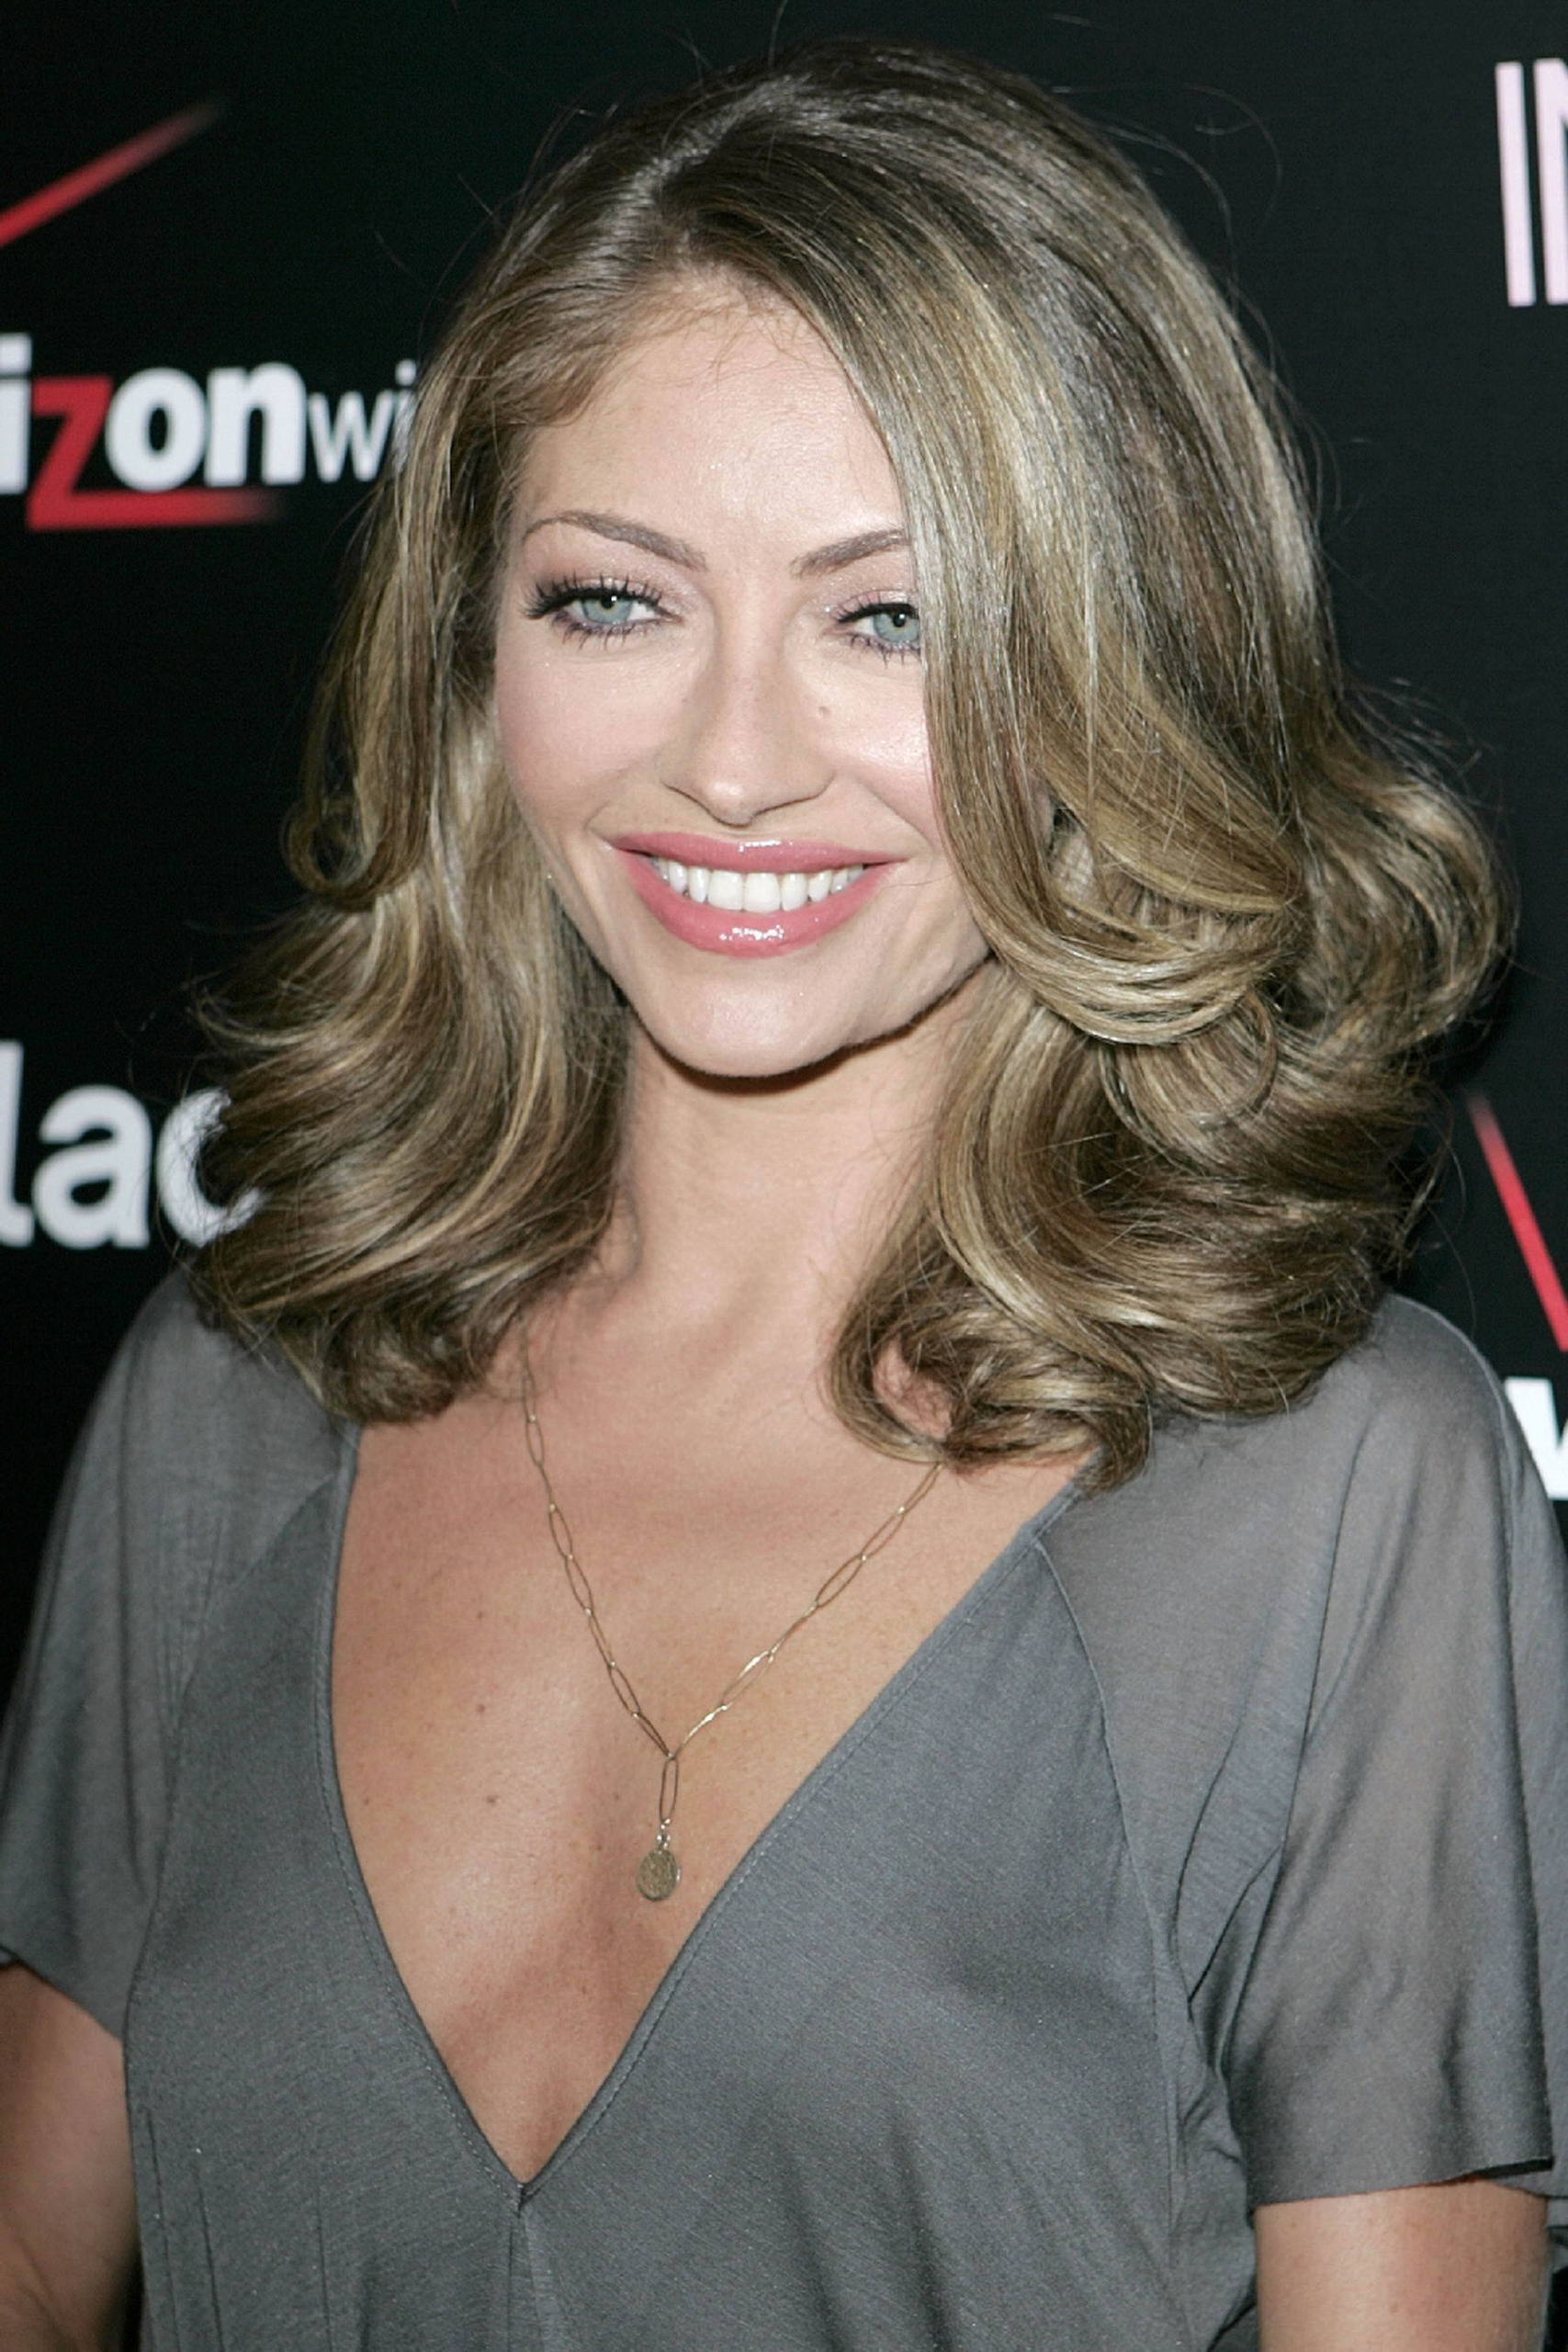 rebecca gayheart the social encyclopedia rebecca gayheart rebecca at new blackberry launch rebecca gayheart photo